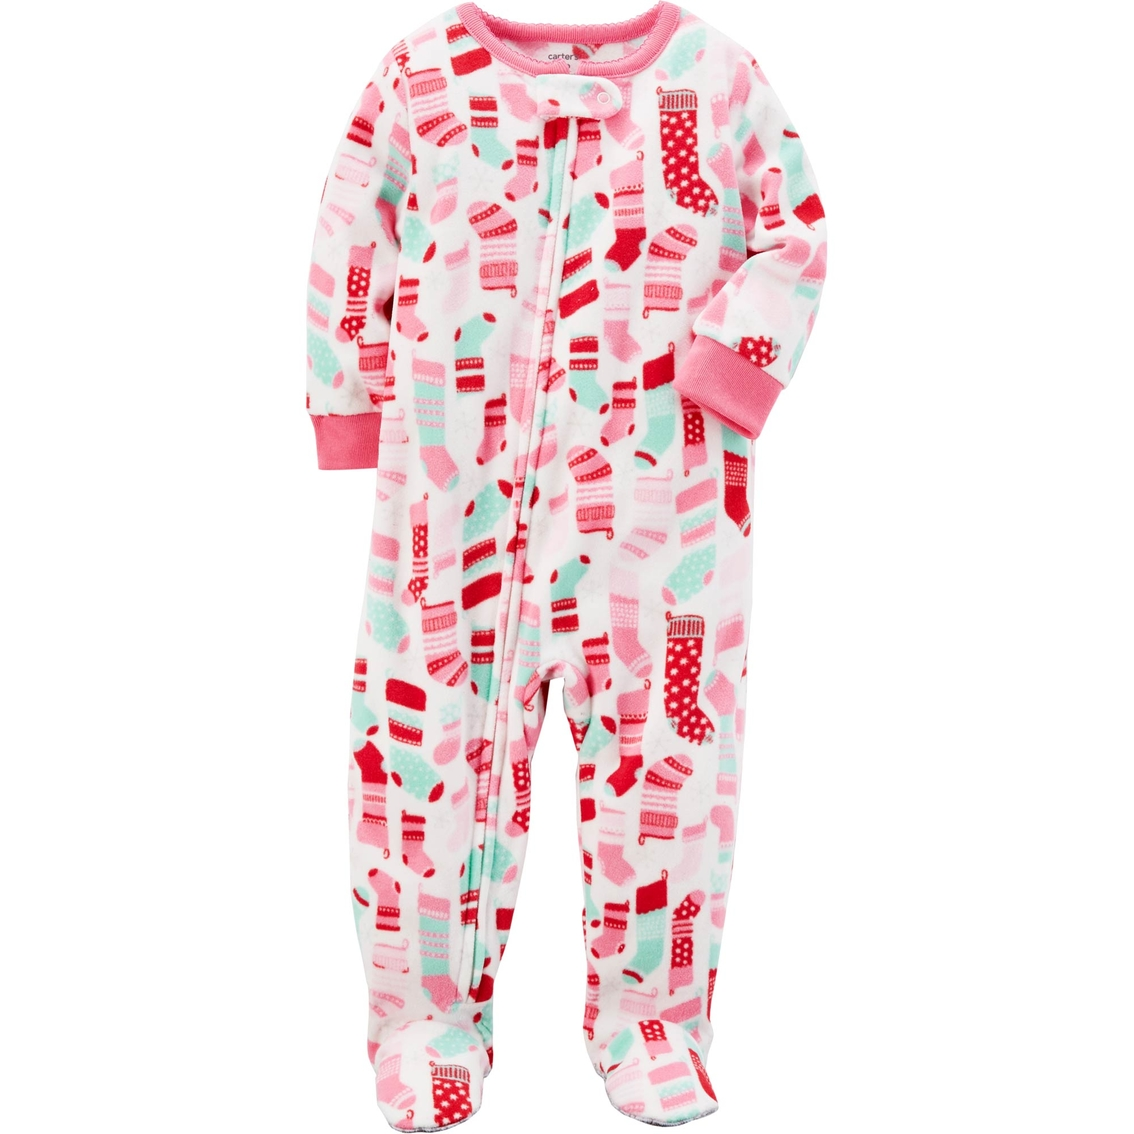 e57795da5415 Carter s Infant Girls Stocking Print Footed Pajamas